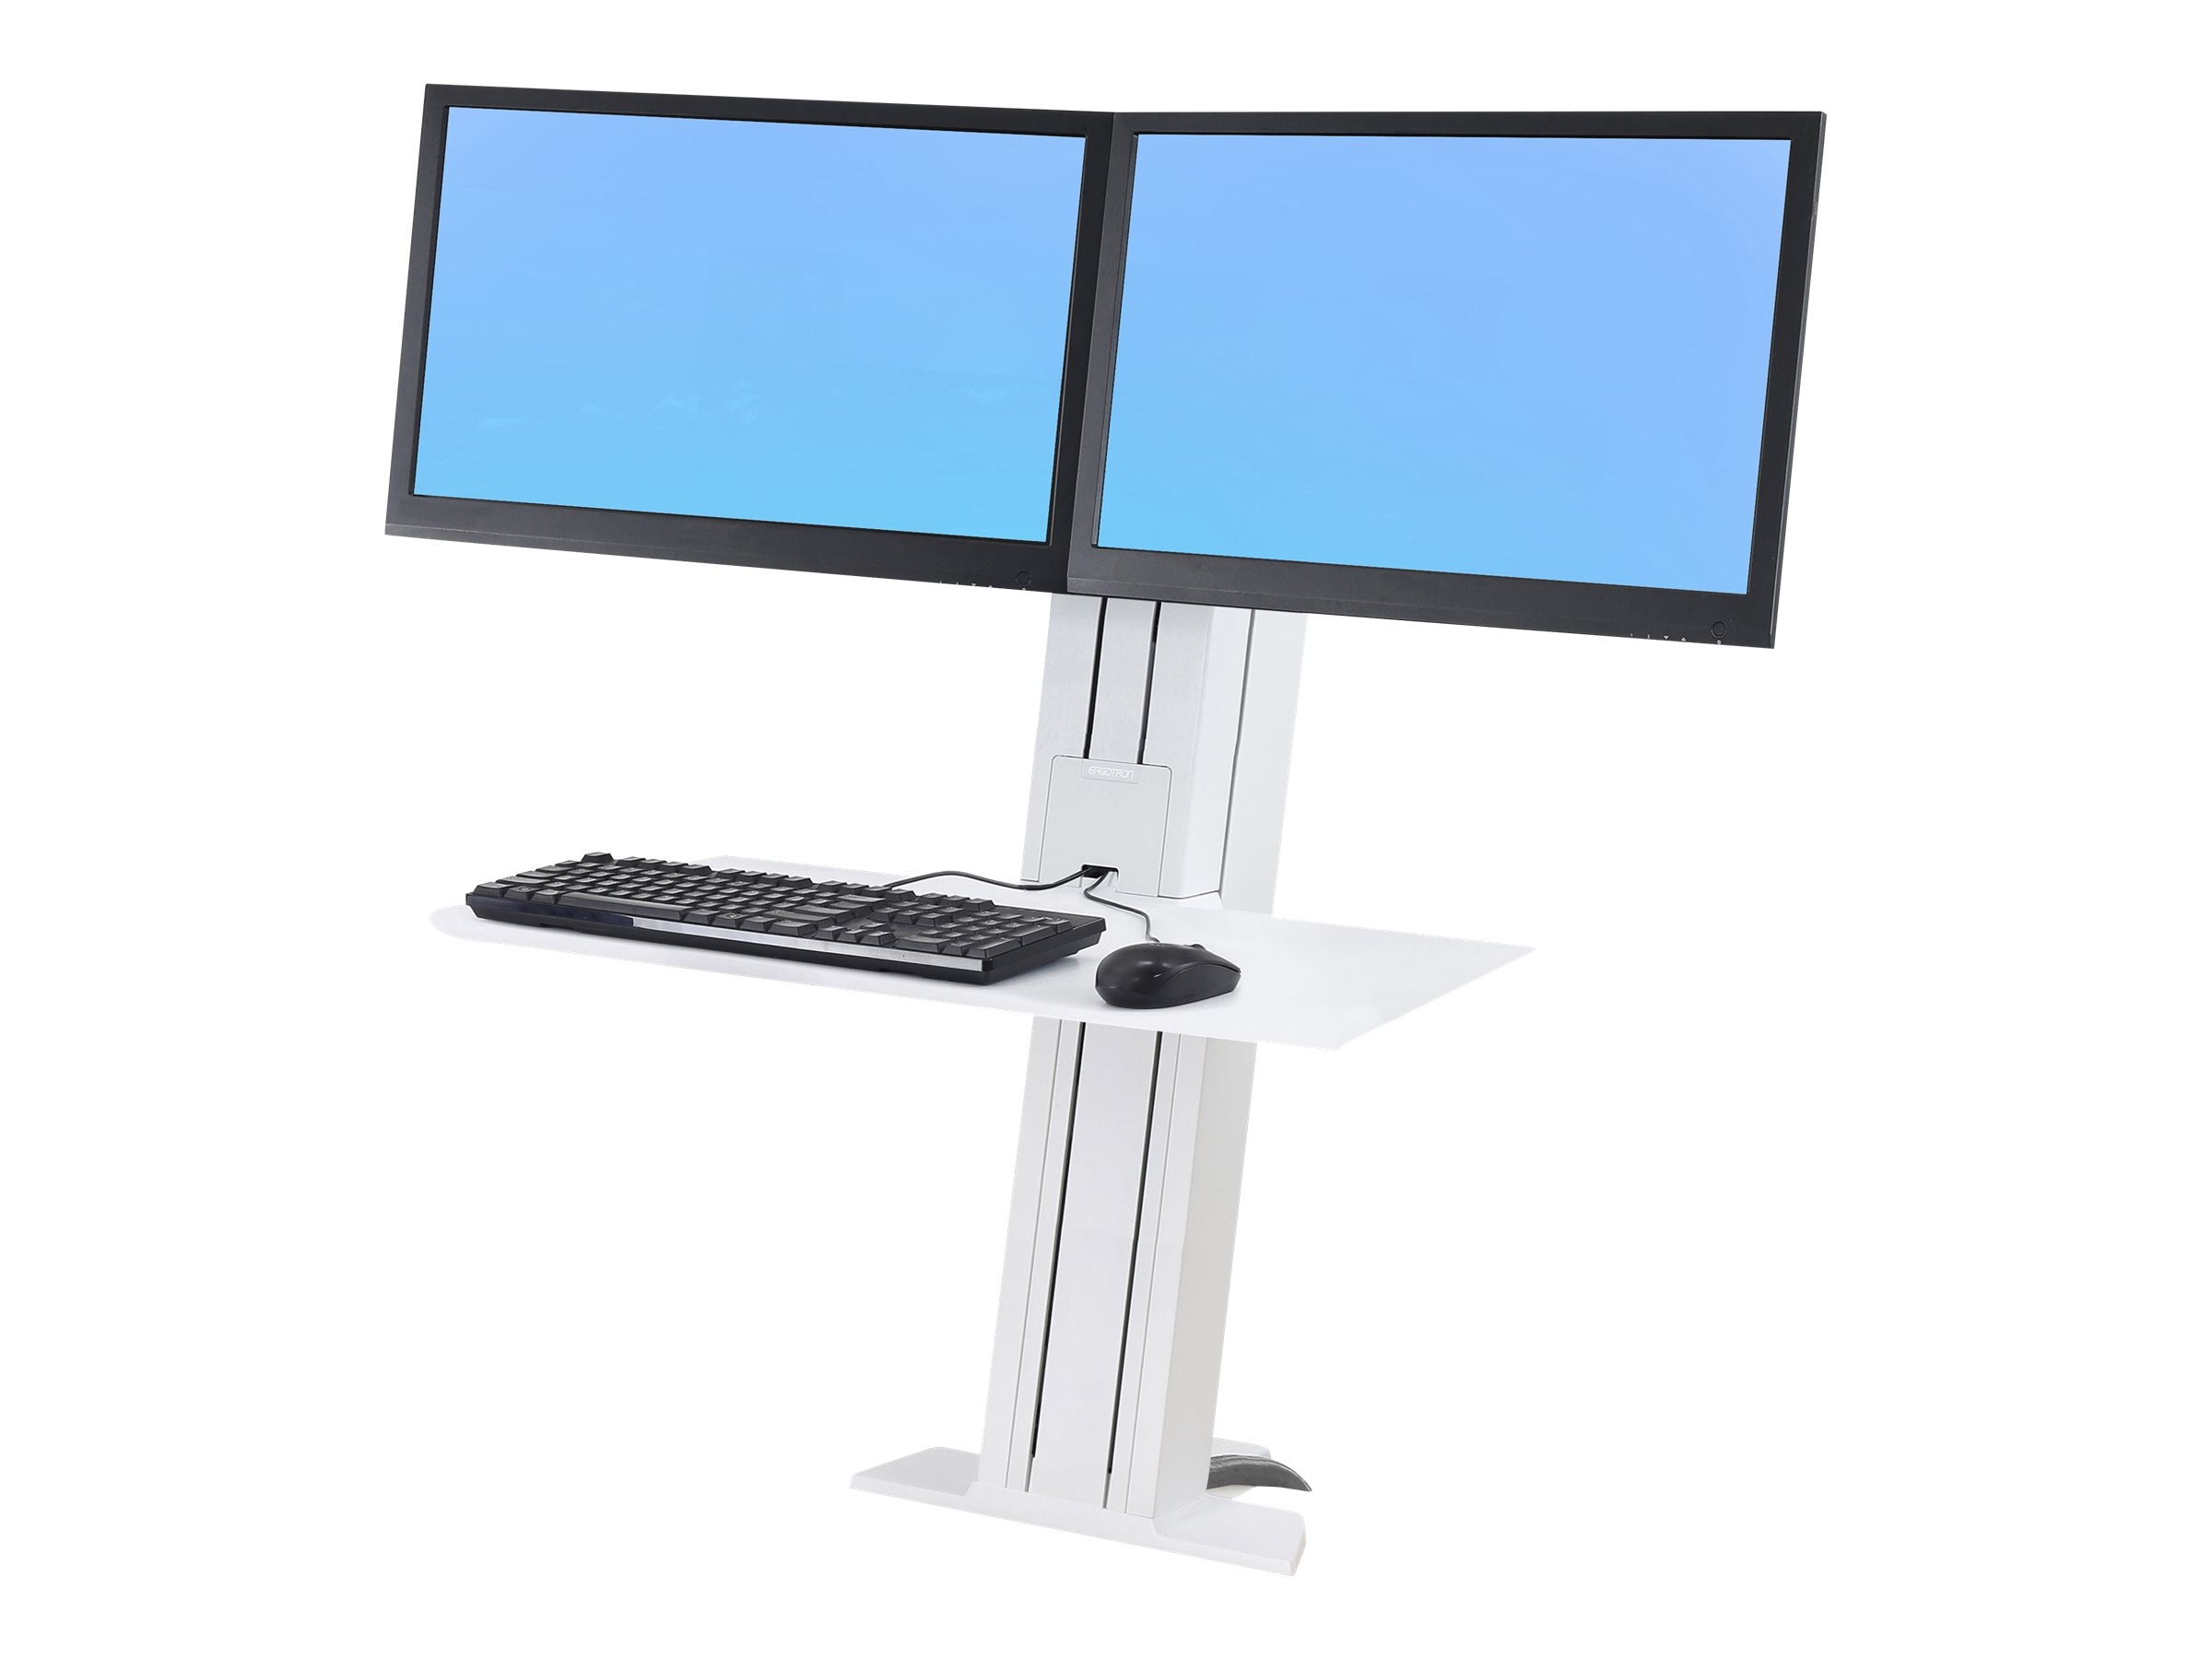 Ergotron WorkFit-SR, Dual Monitor, Sit-Stand Desktop Workstation, Short Surface, White